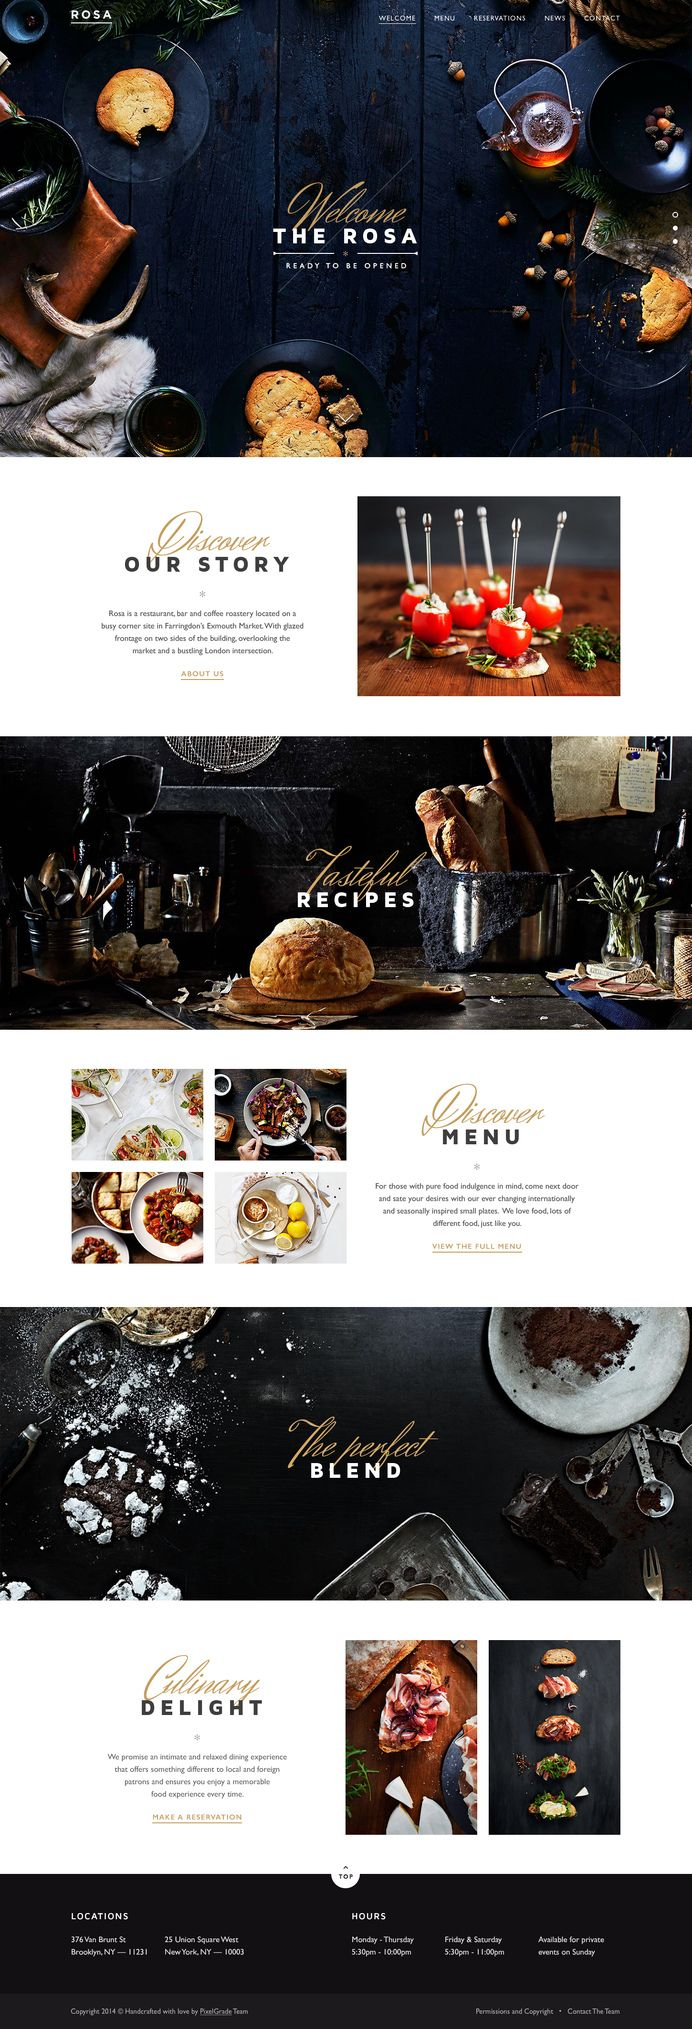 I love this design - dark, clean and beautiful. #webdesign #design